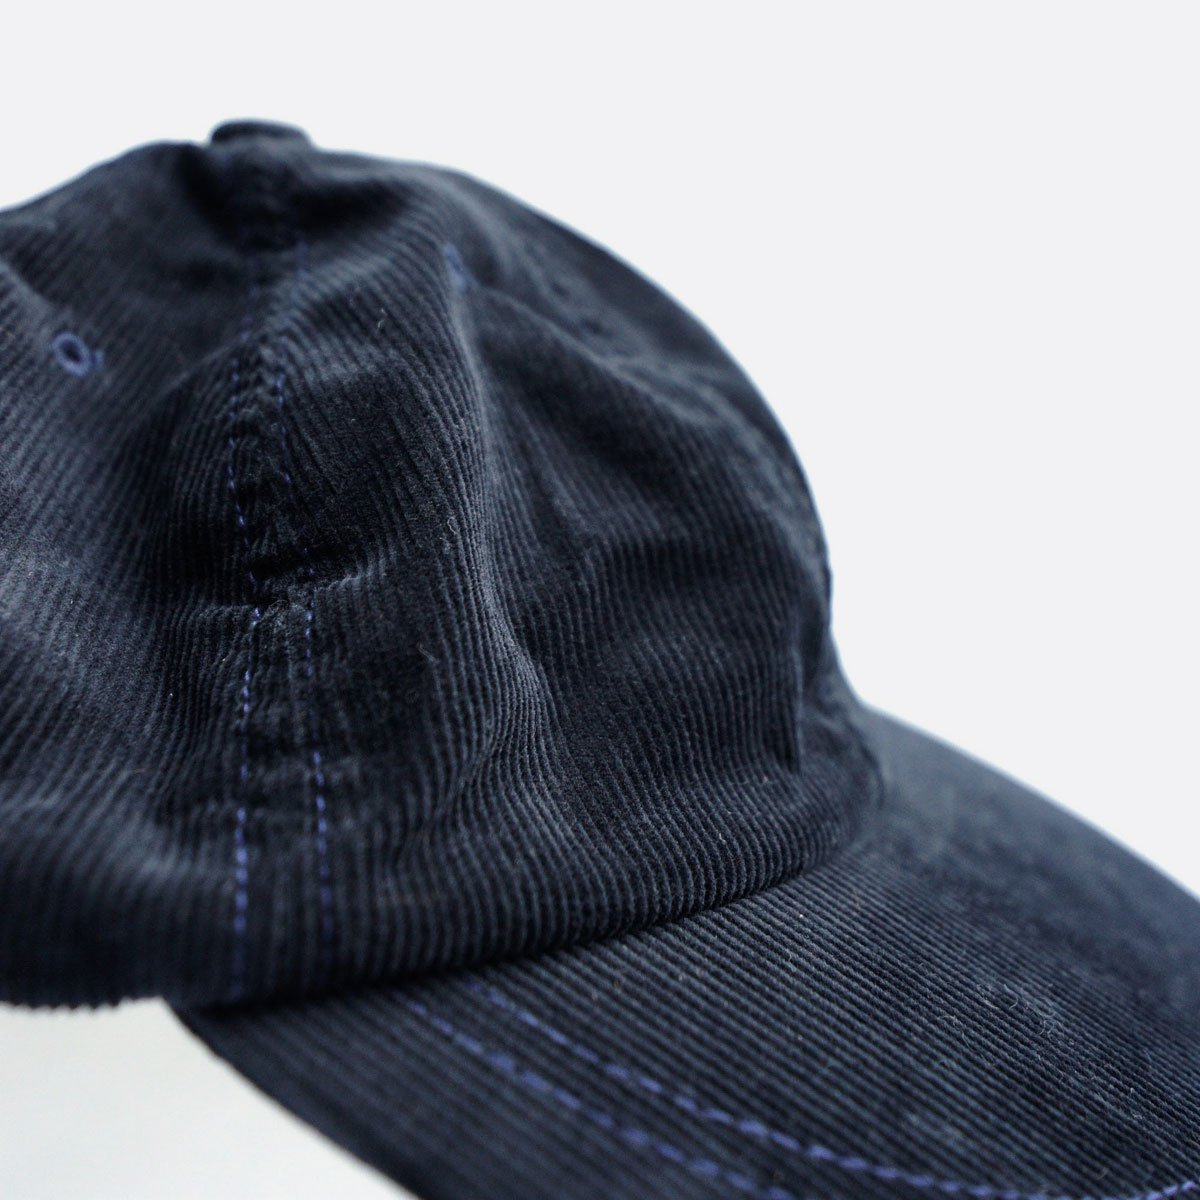 ENDS & MEANS  6PANEL CAP CORDUROY (NAVY)3